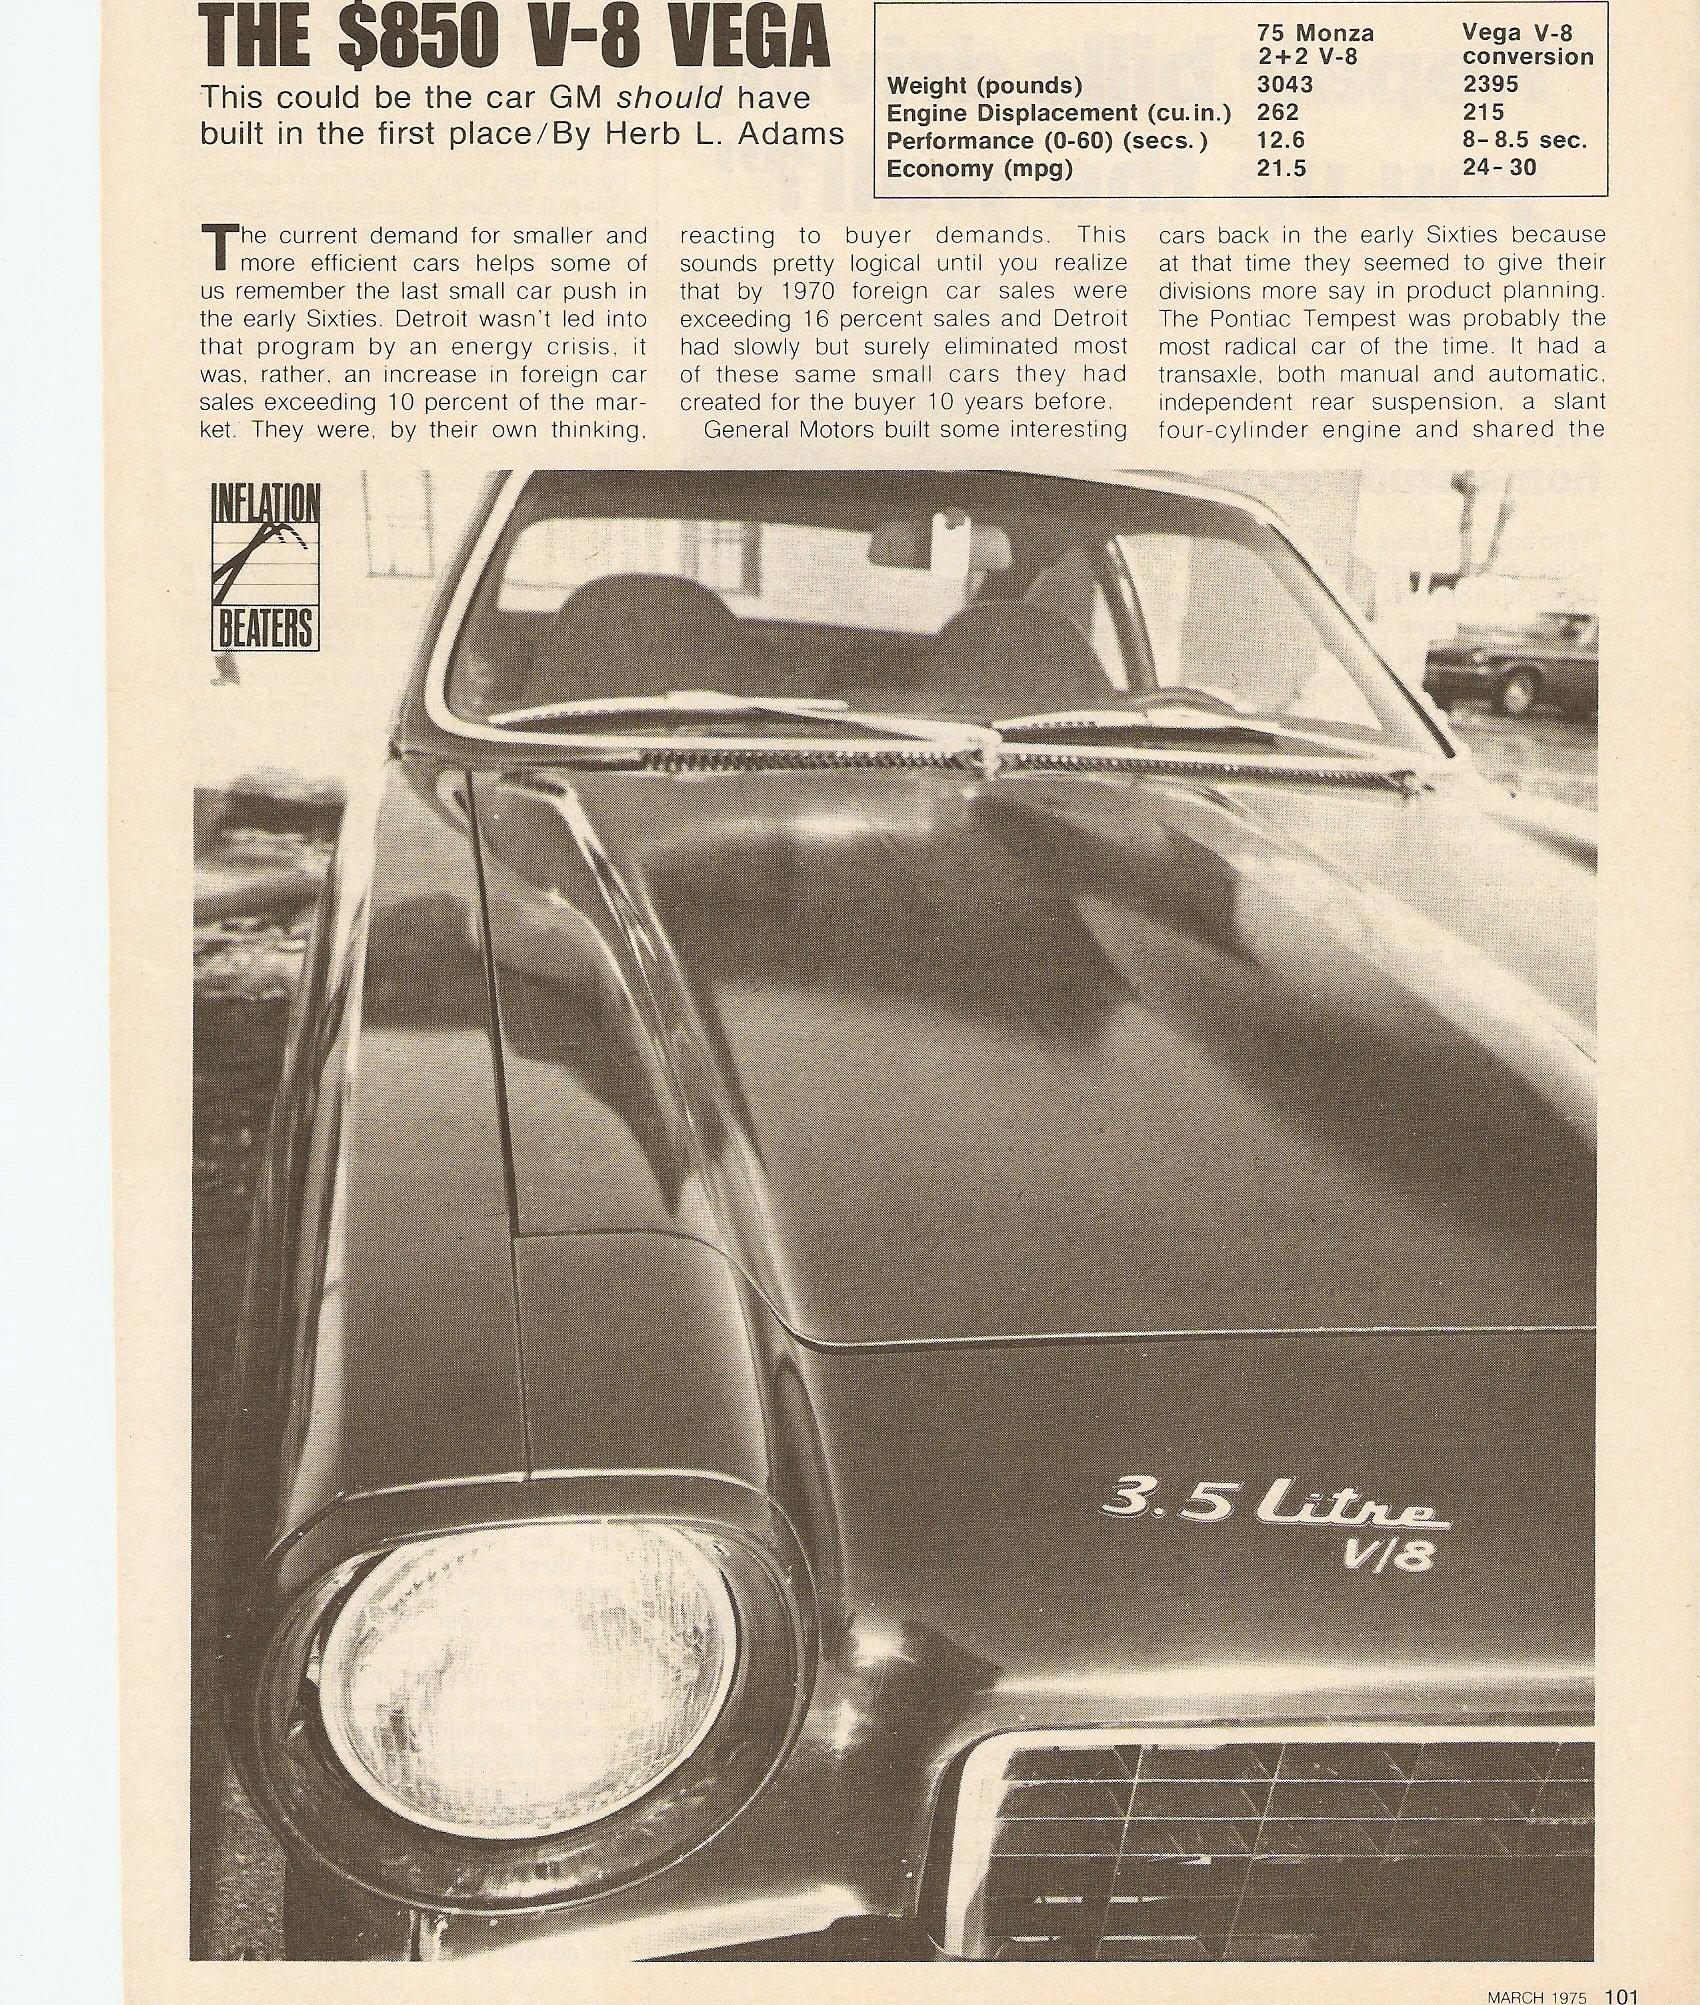 Herb Chambers Chevrolet Buick Pontiac: Another Bugdewde 1972 Chevrolet Vega Post...1559333 By